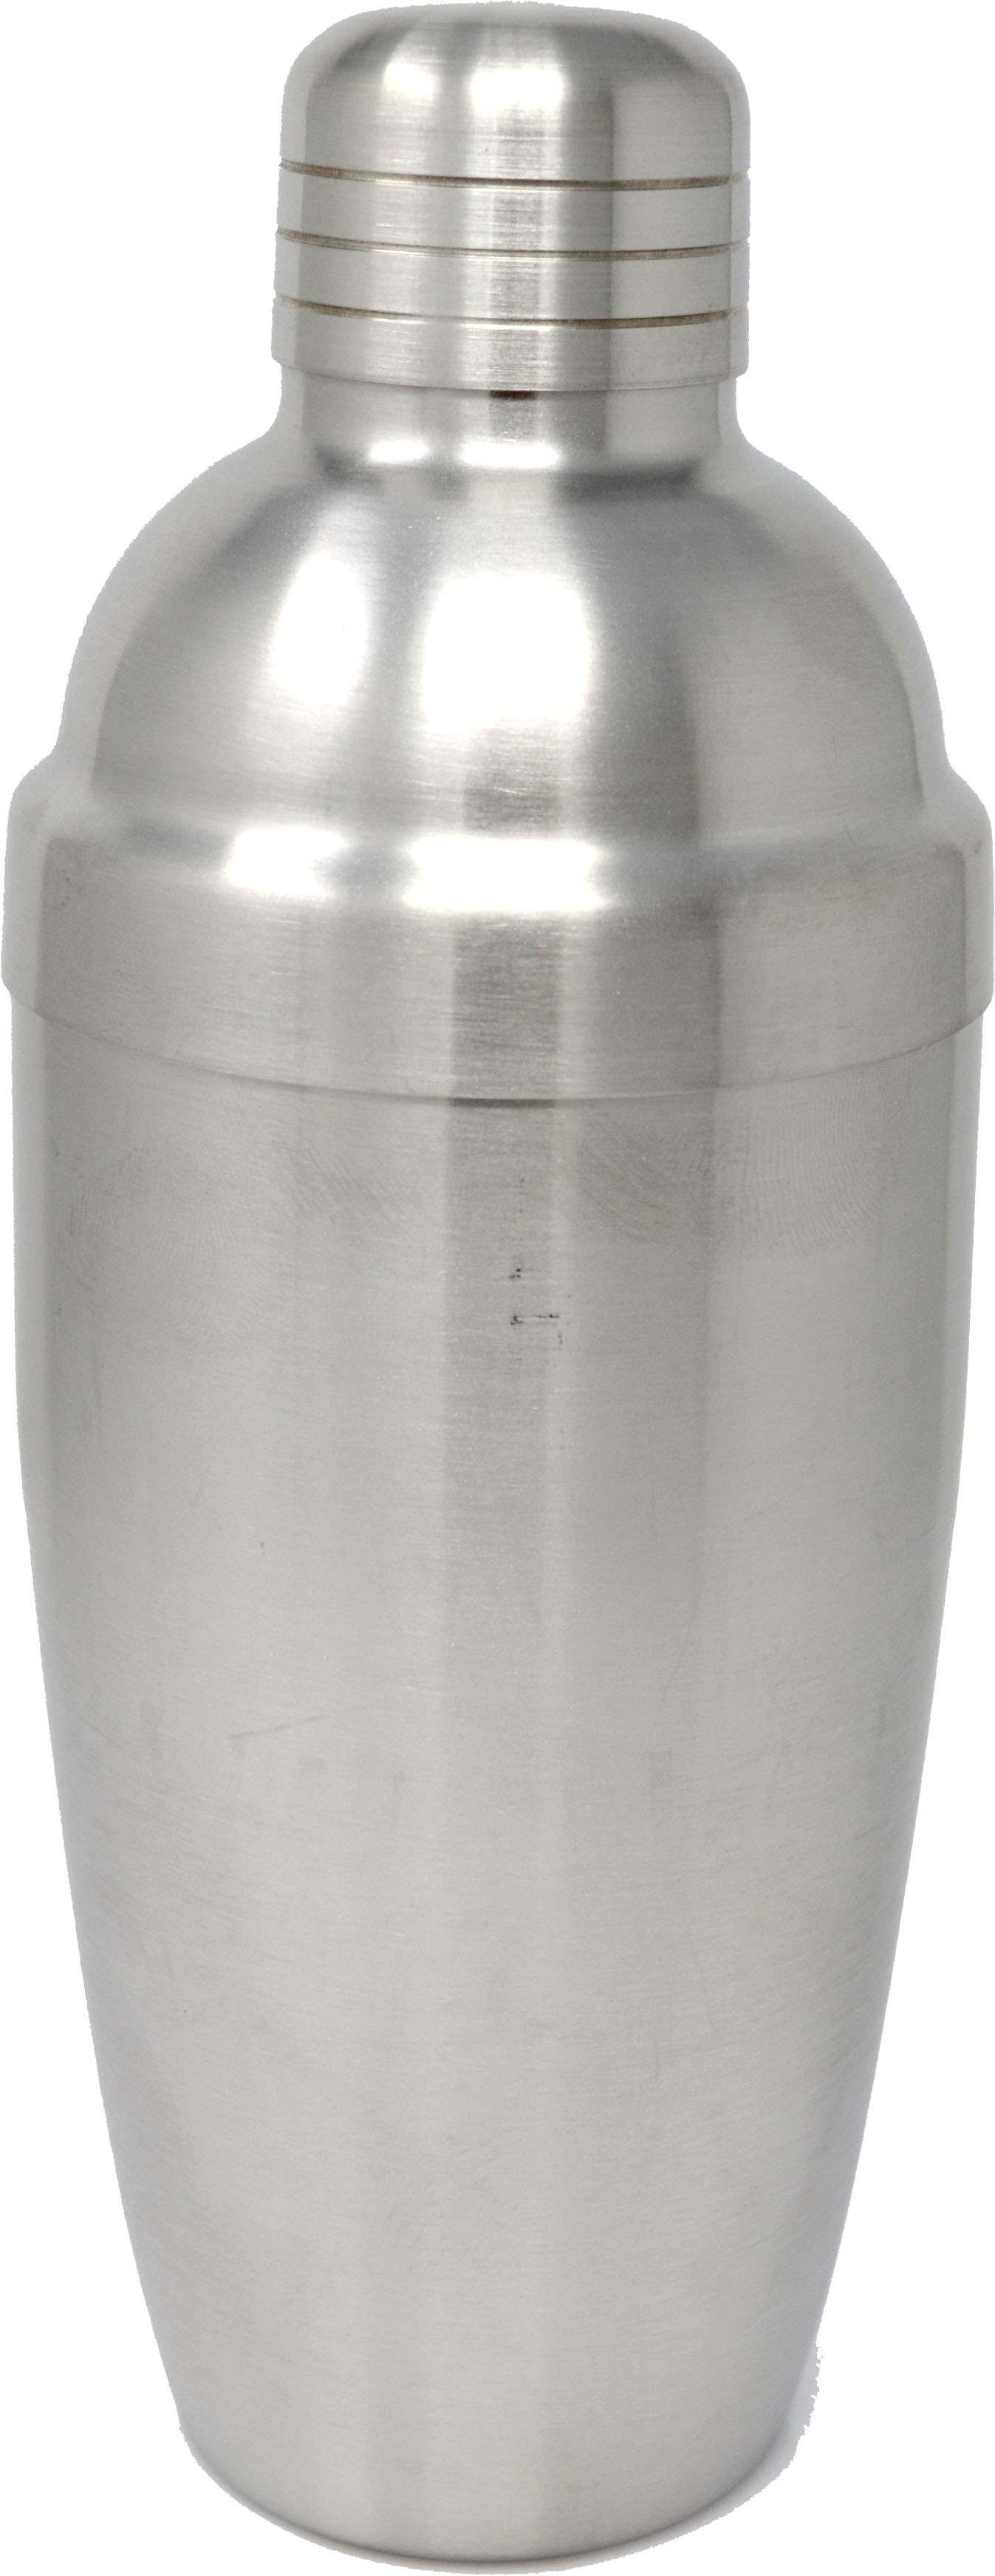 Stainless Steel Shaker withMixing Ball